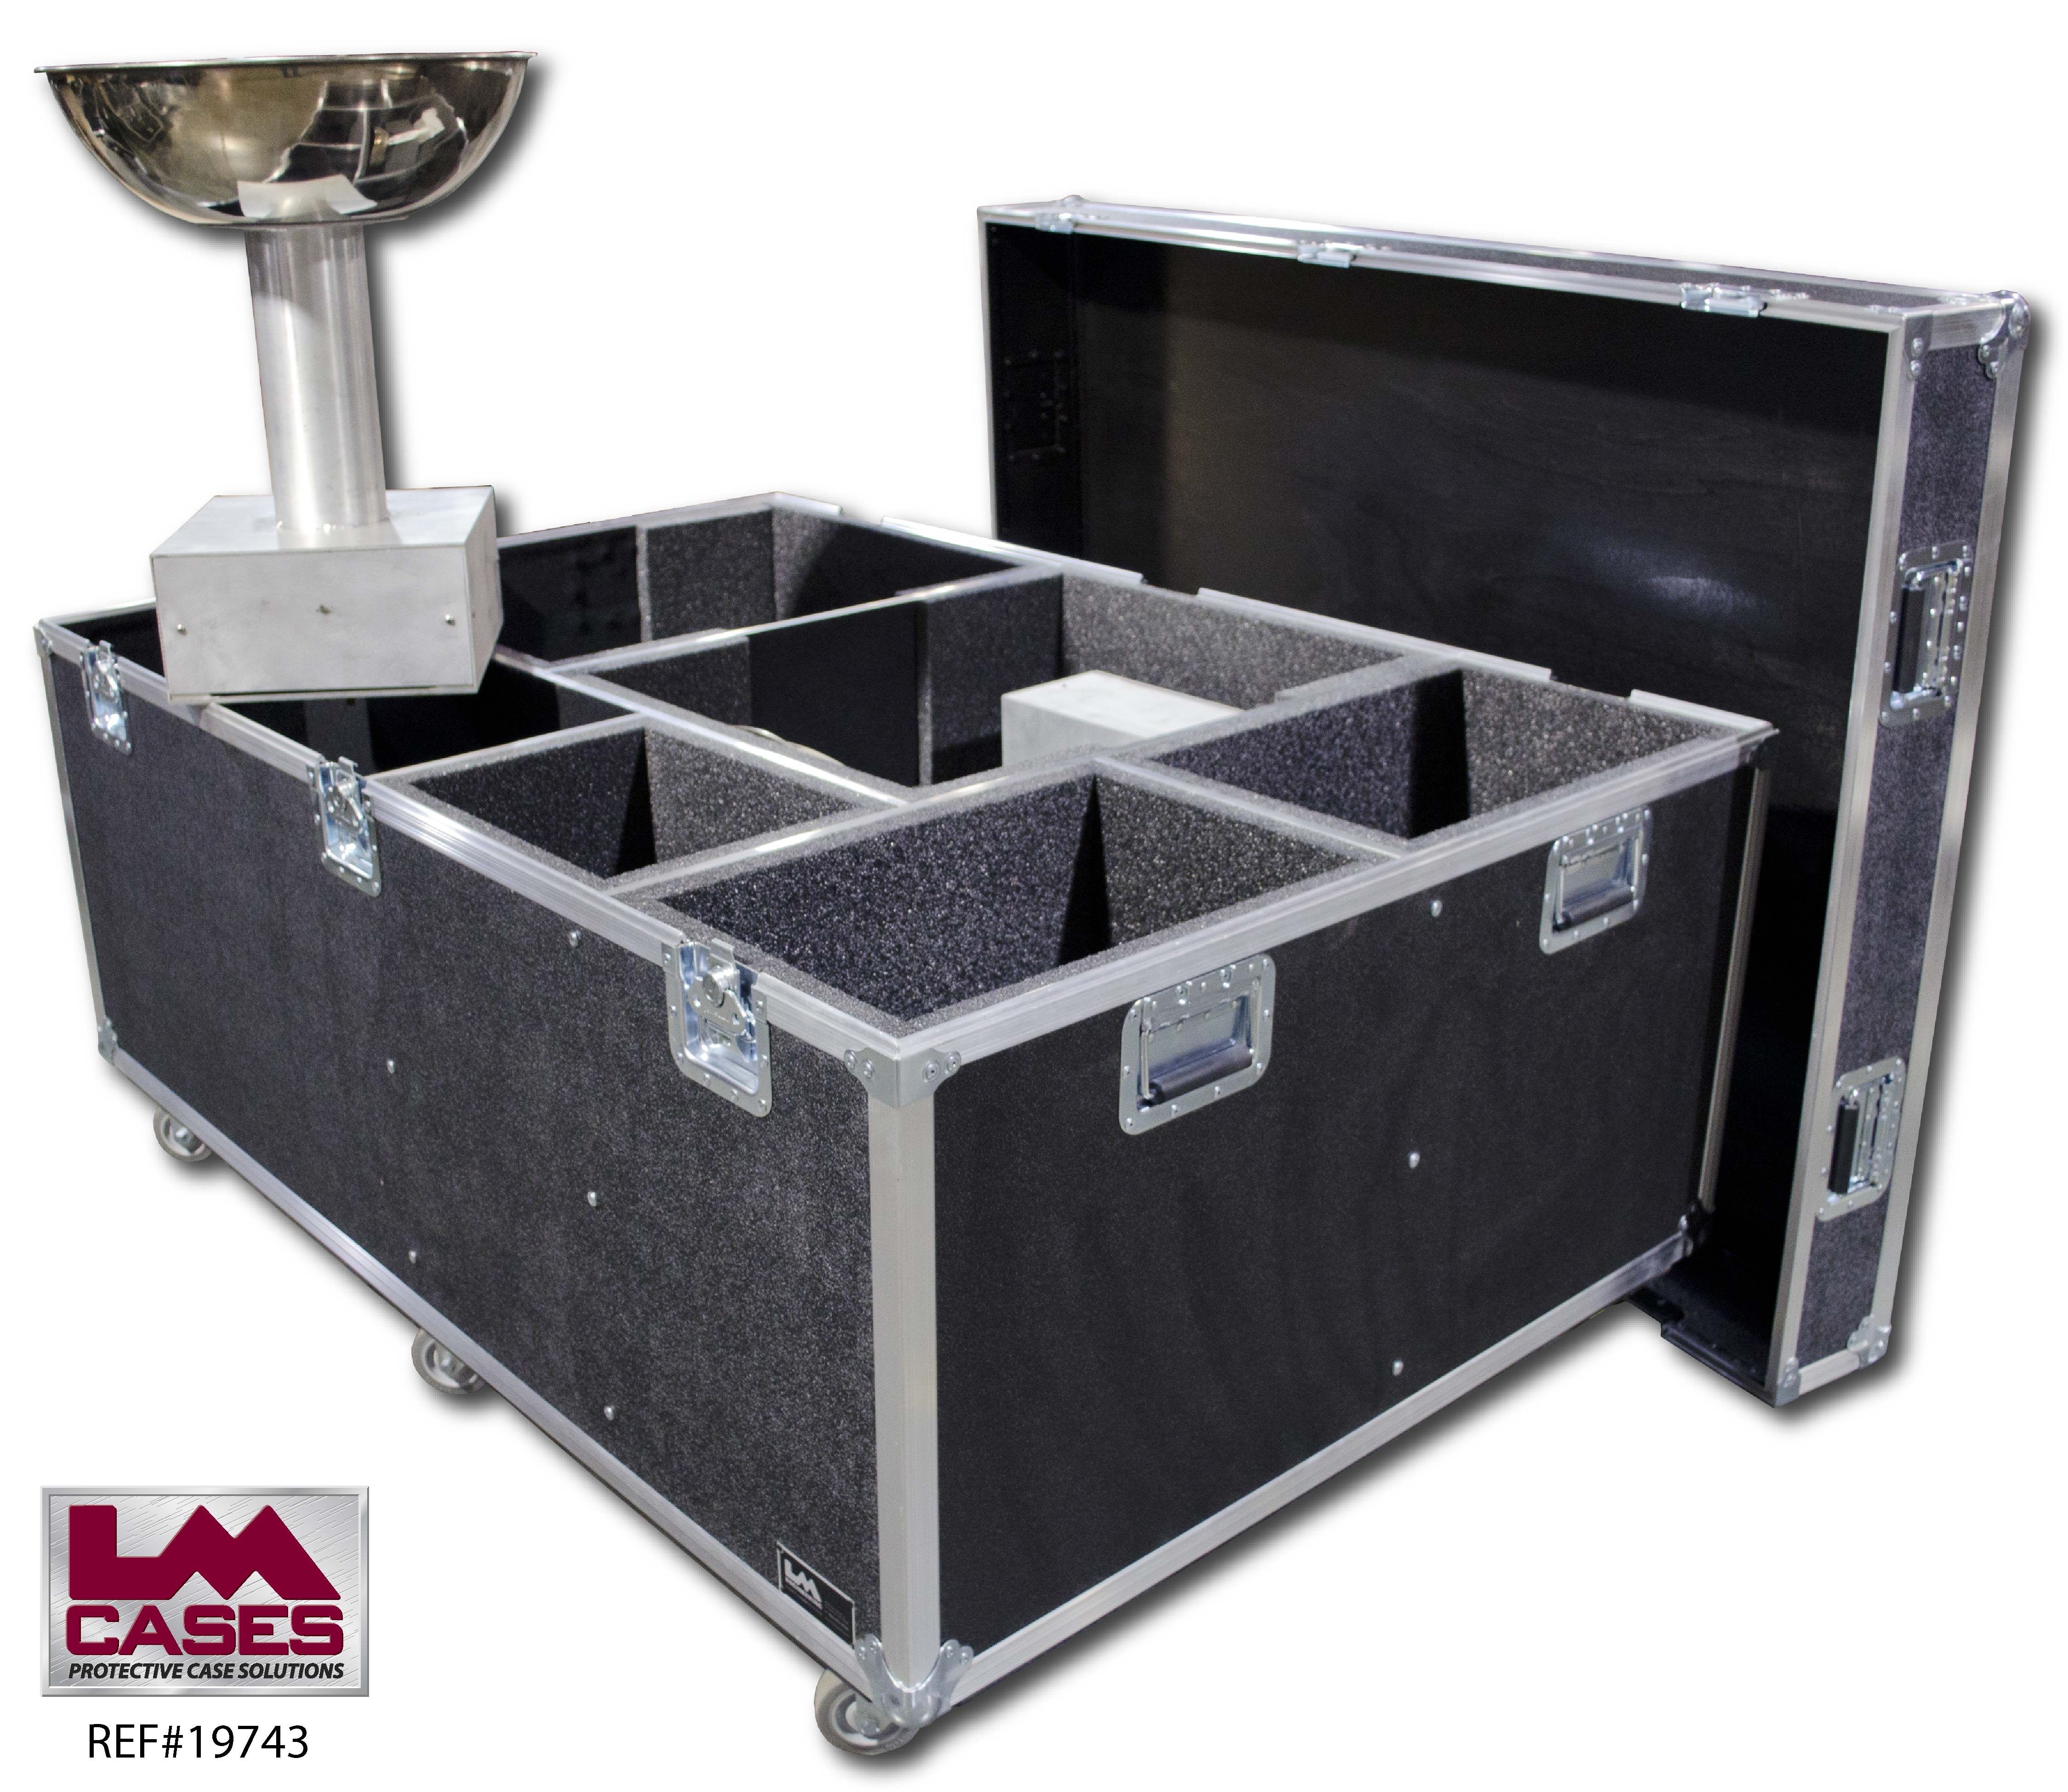 dakota office products case solution Dakota office products case solution - dakota office products (dop) company was a wholesaler of office supplies to distinctive organizations it had a far reaching product offering.